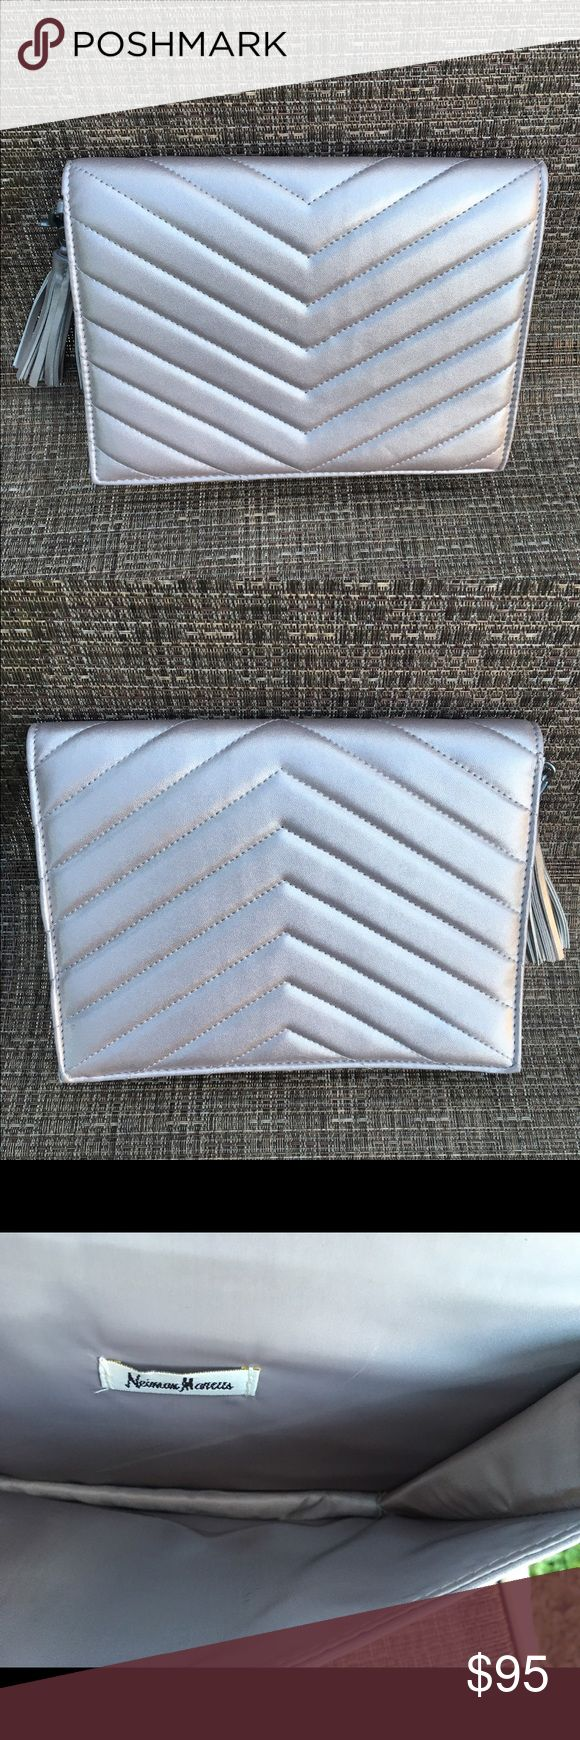 Neiman Marcus Metallic Tassel Clutch Neiman Marcus Metallic Tassel Clutch.  Like new.  Perfect clutch handbag for that black dress or another evening dress.  This is spacious enough for your phone, credit cards, lip stick and keys: Neiman Marcus Bags Clutches & Wristlets